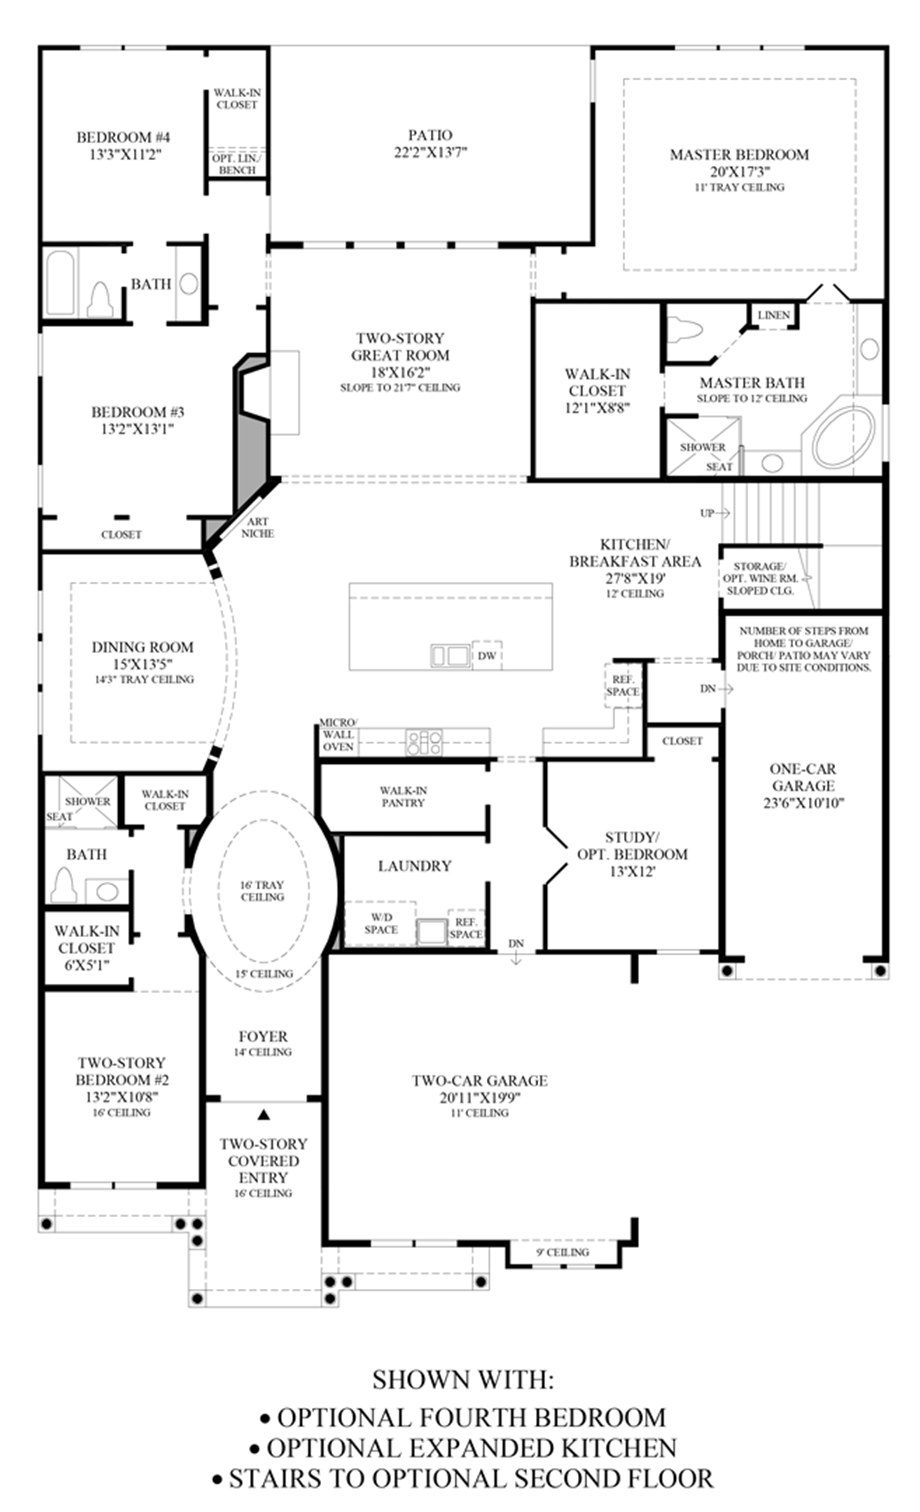 Optional Stairs to 2nd floor, 4th Bedroom & Expanded Kitchen Floor Plan